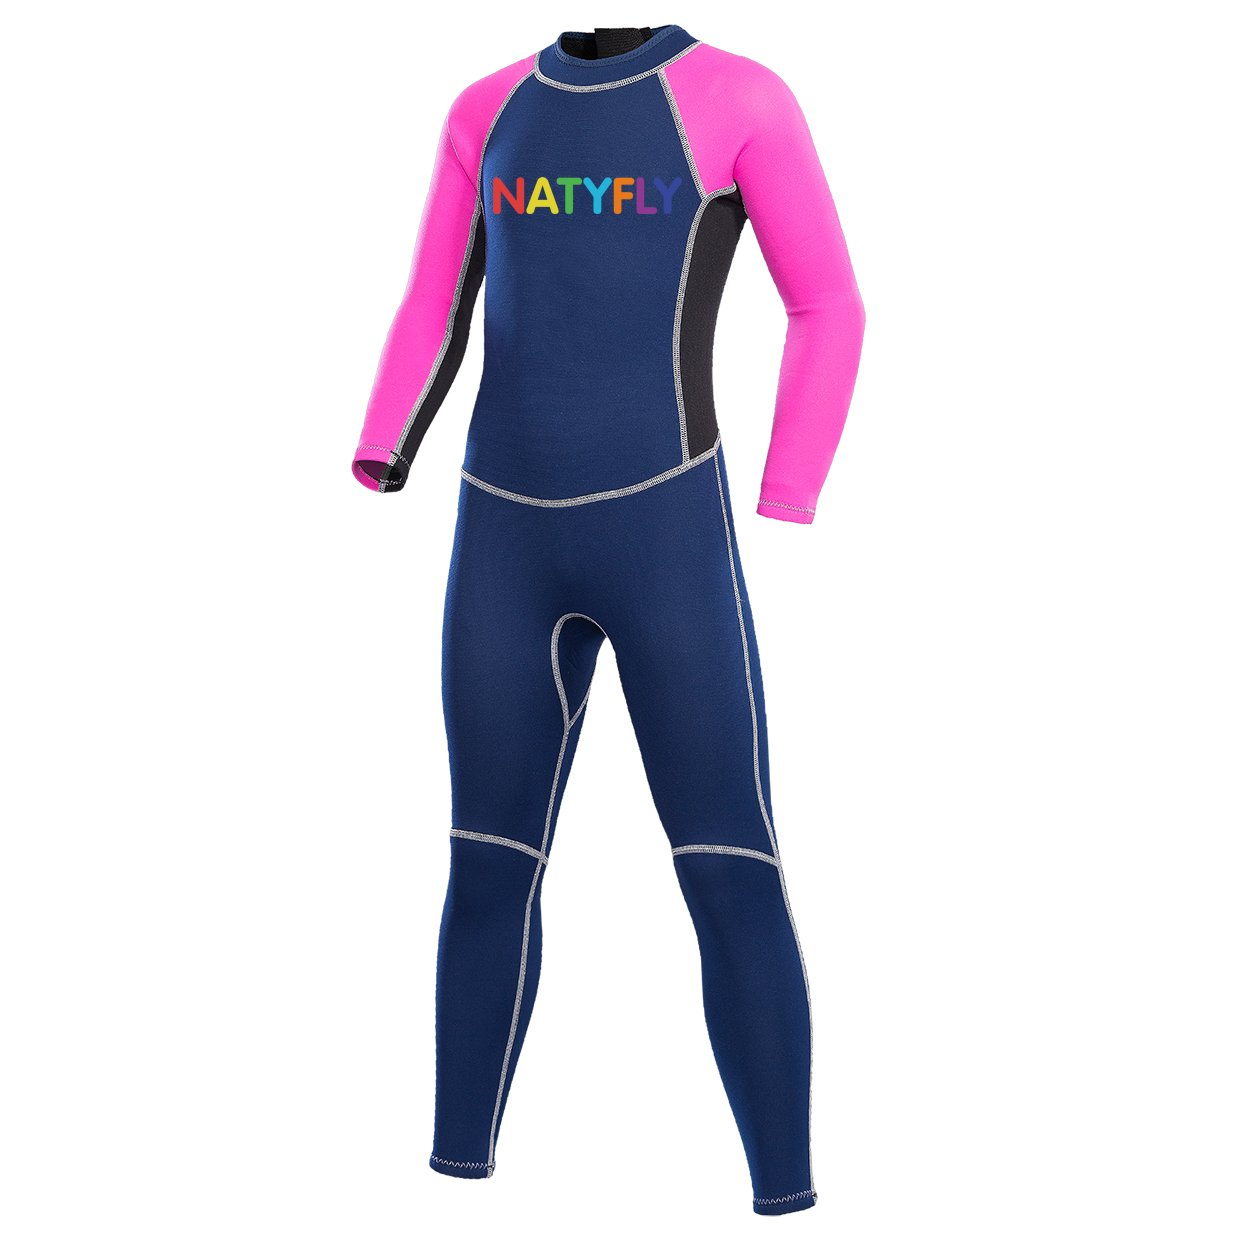 NATYFLY Neoprene Wetsuits for Kids Boys Girls Back Zipper One Piece Swimsuit UV Protection-Brand (Pink-2MM-Long Sleeve, XL-for Height 52''-57'') by NATYFLY